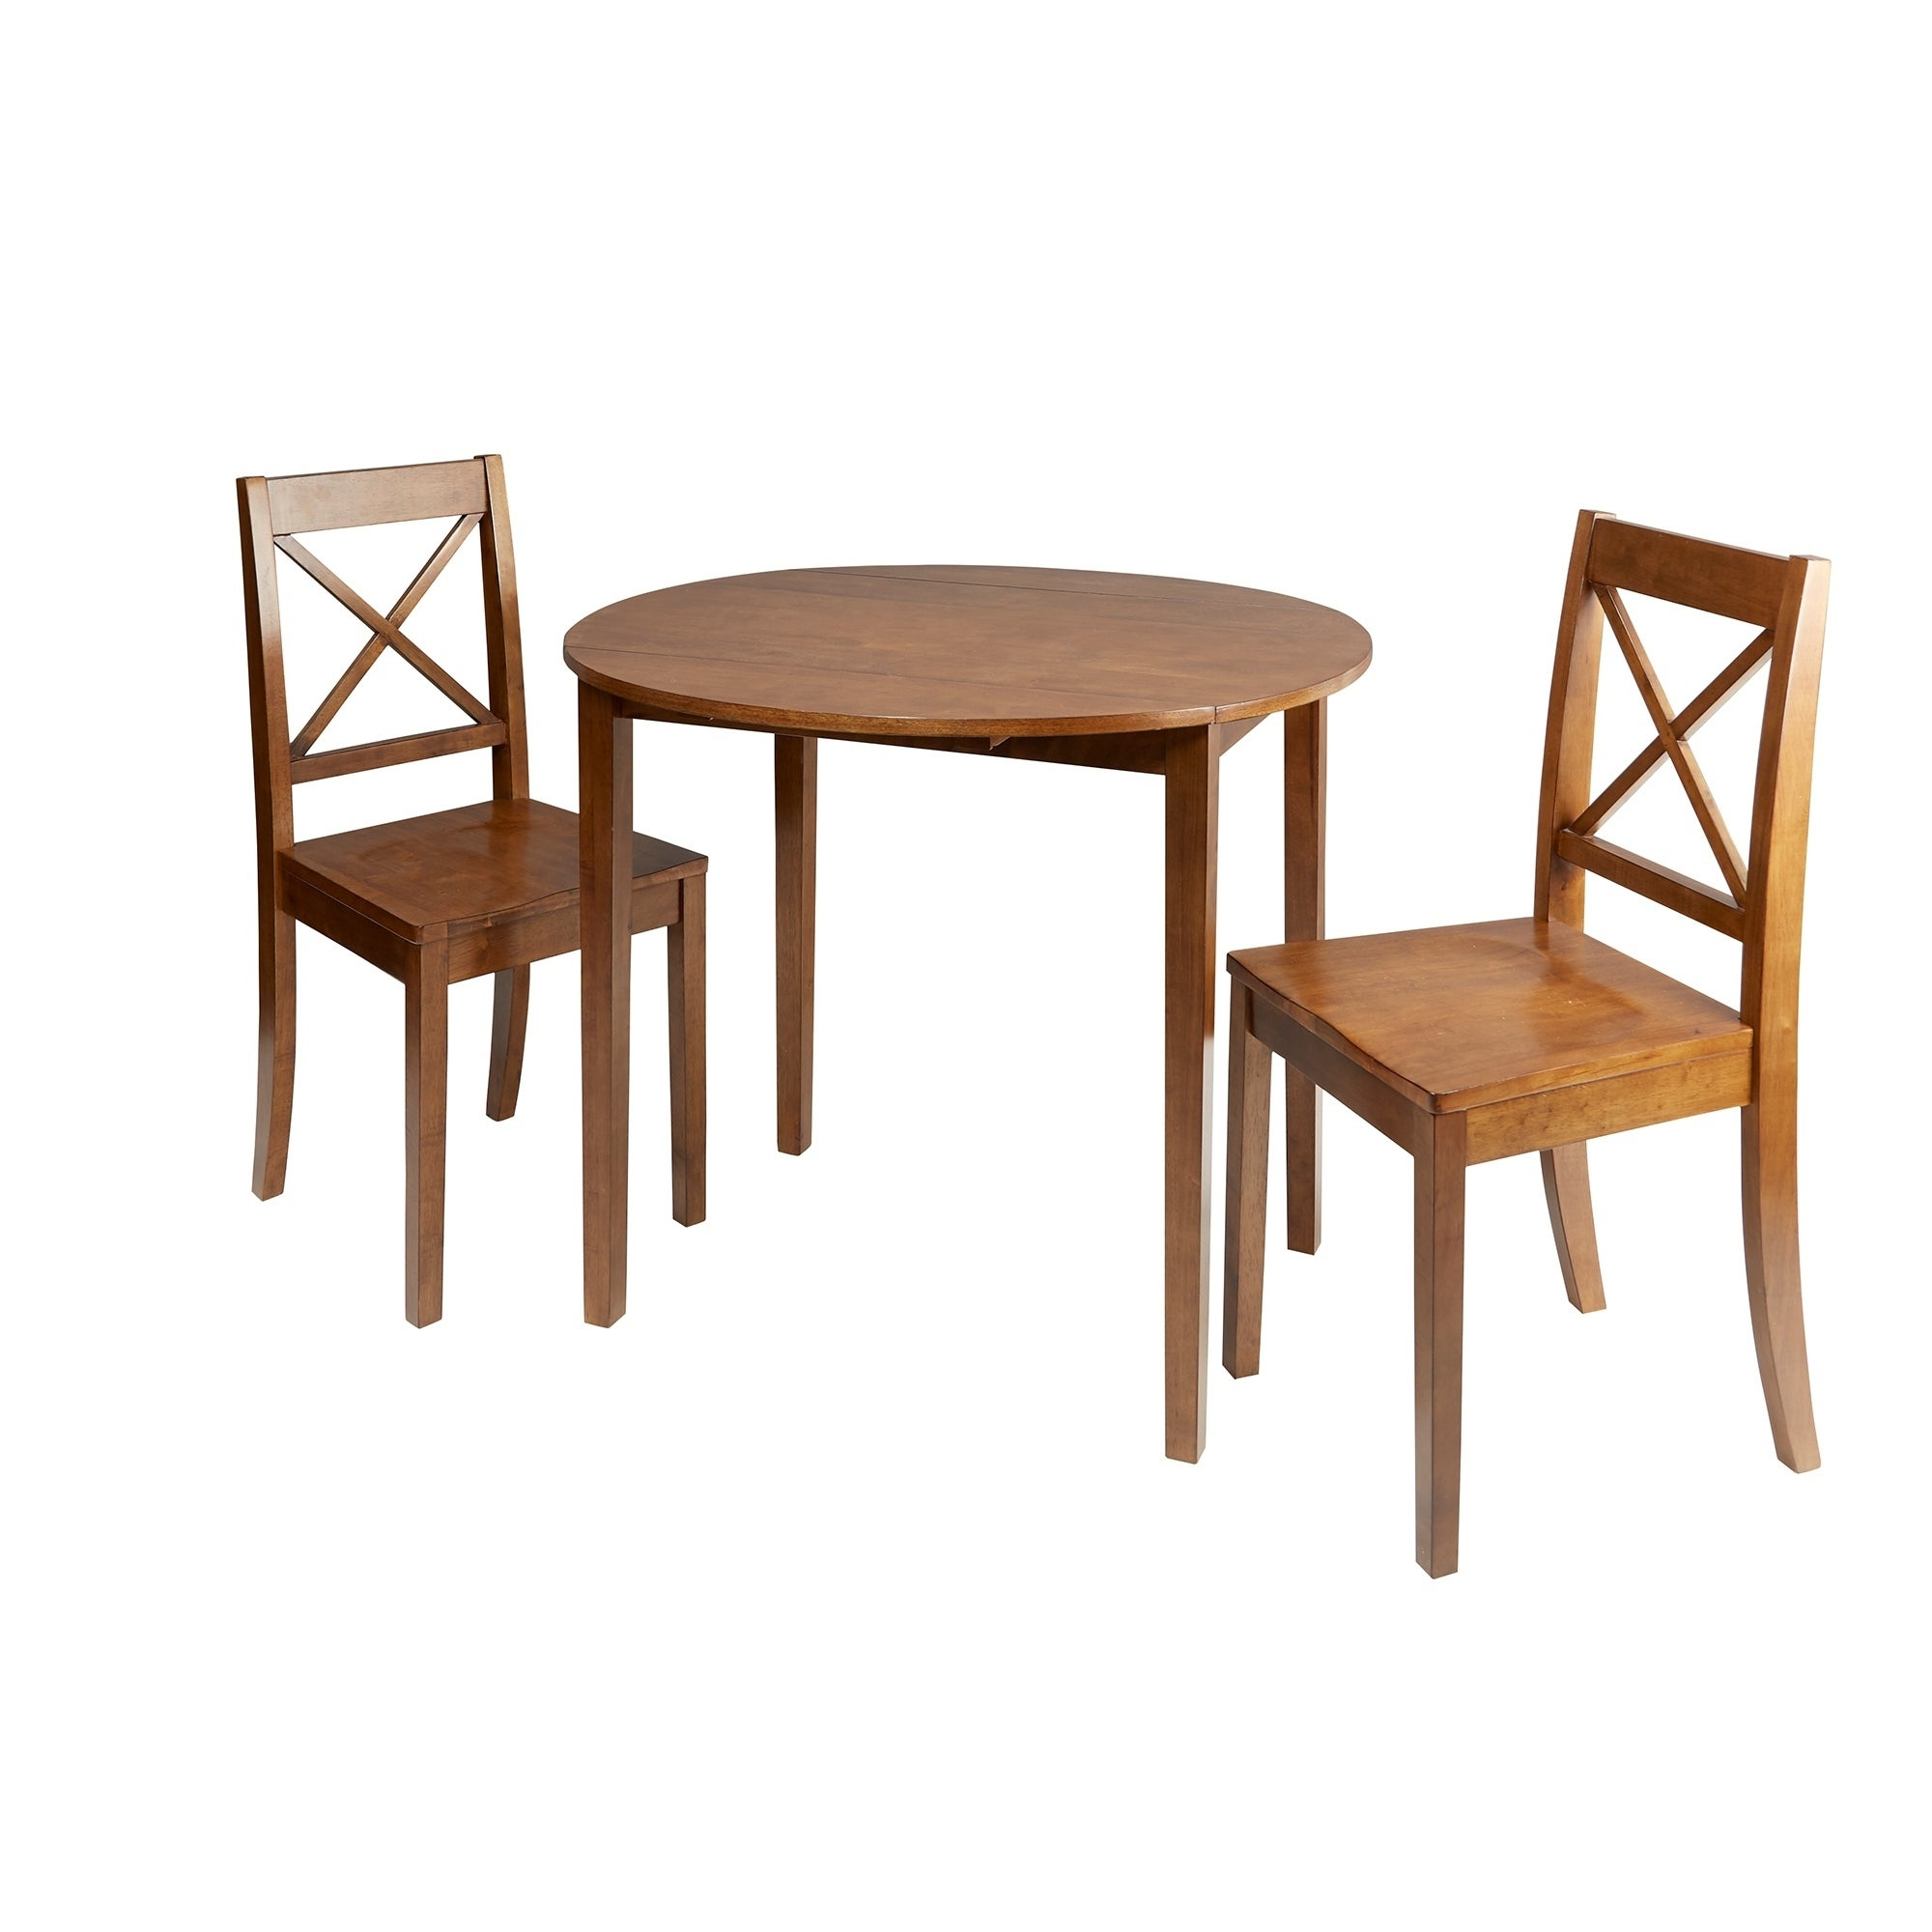 Transitional 3 Piece Drop Leaf Casual Dining Tables Set Within Most Current Murphy 3 Piece Drop Leaf Dining Set (View 21 of 25)